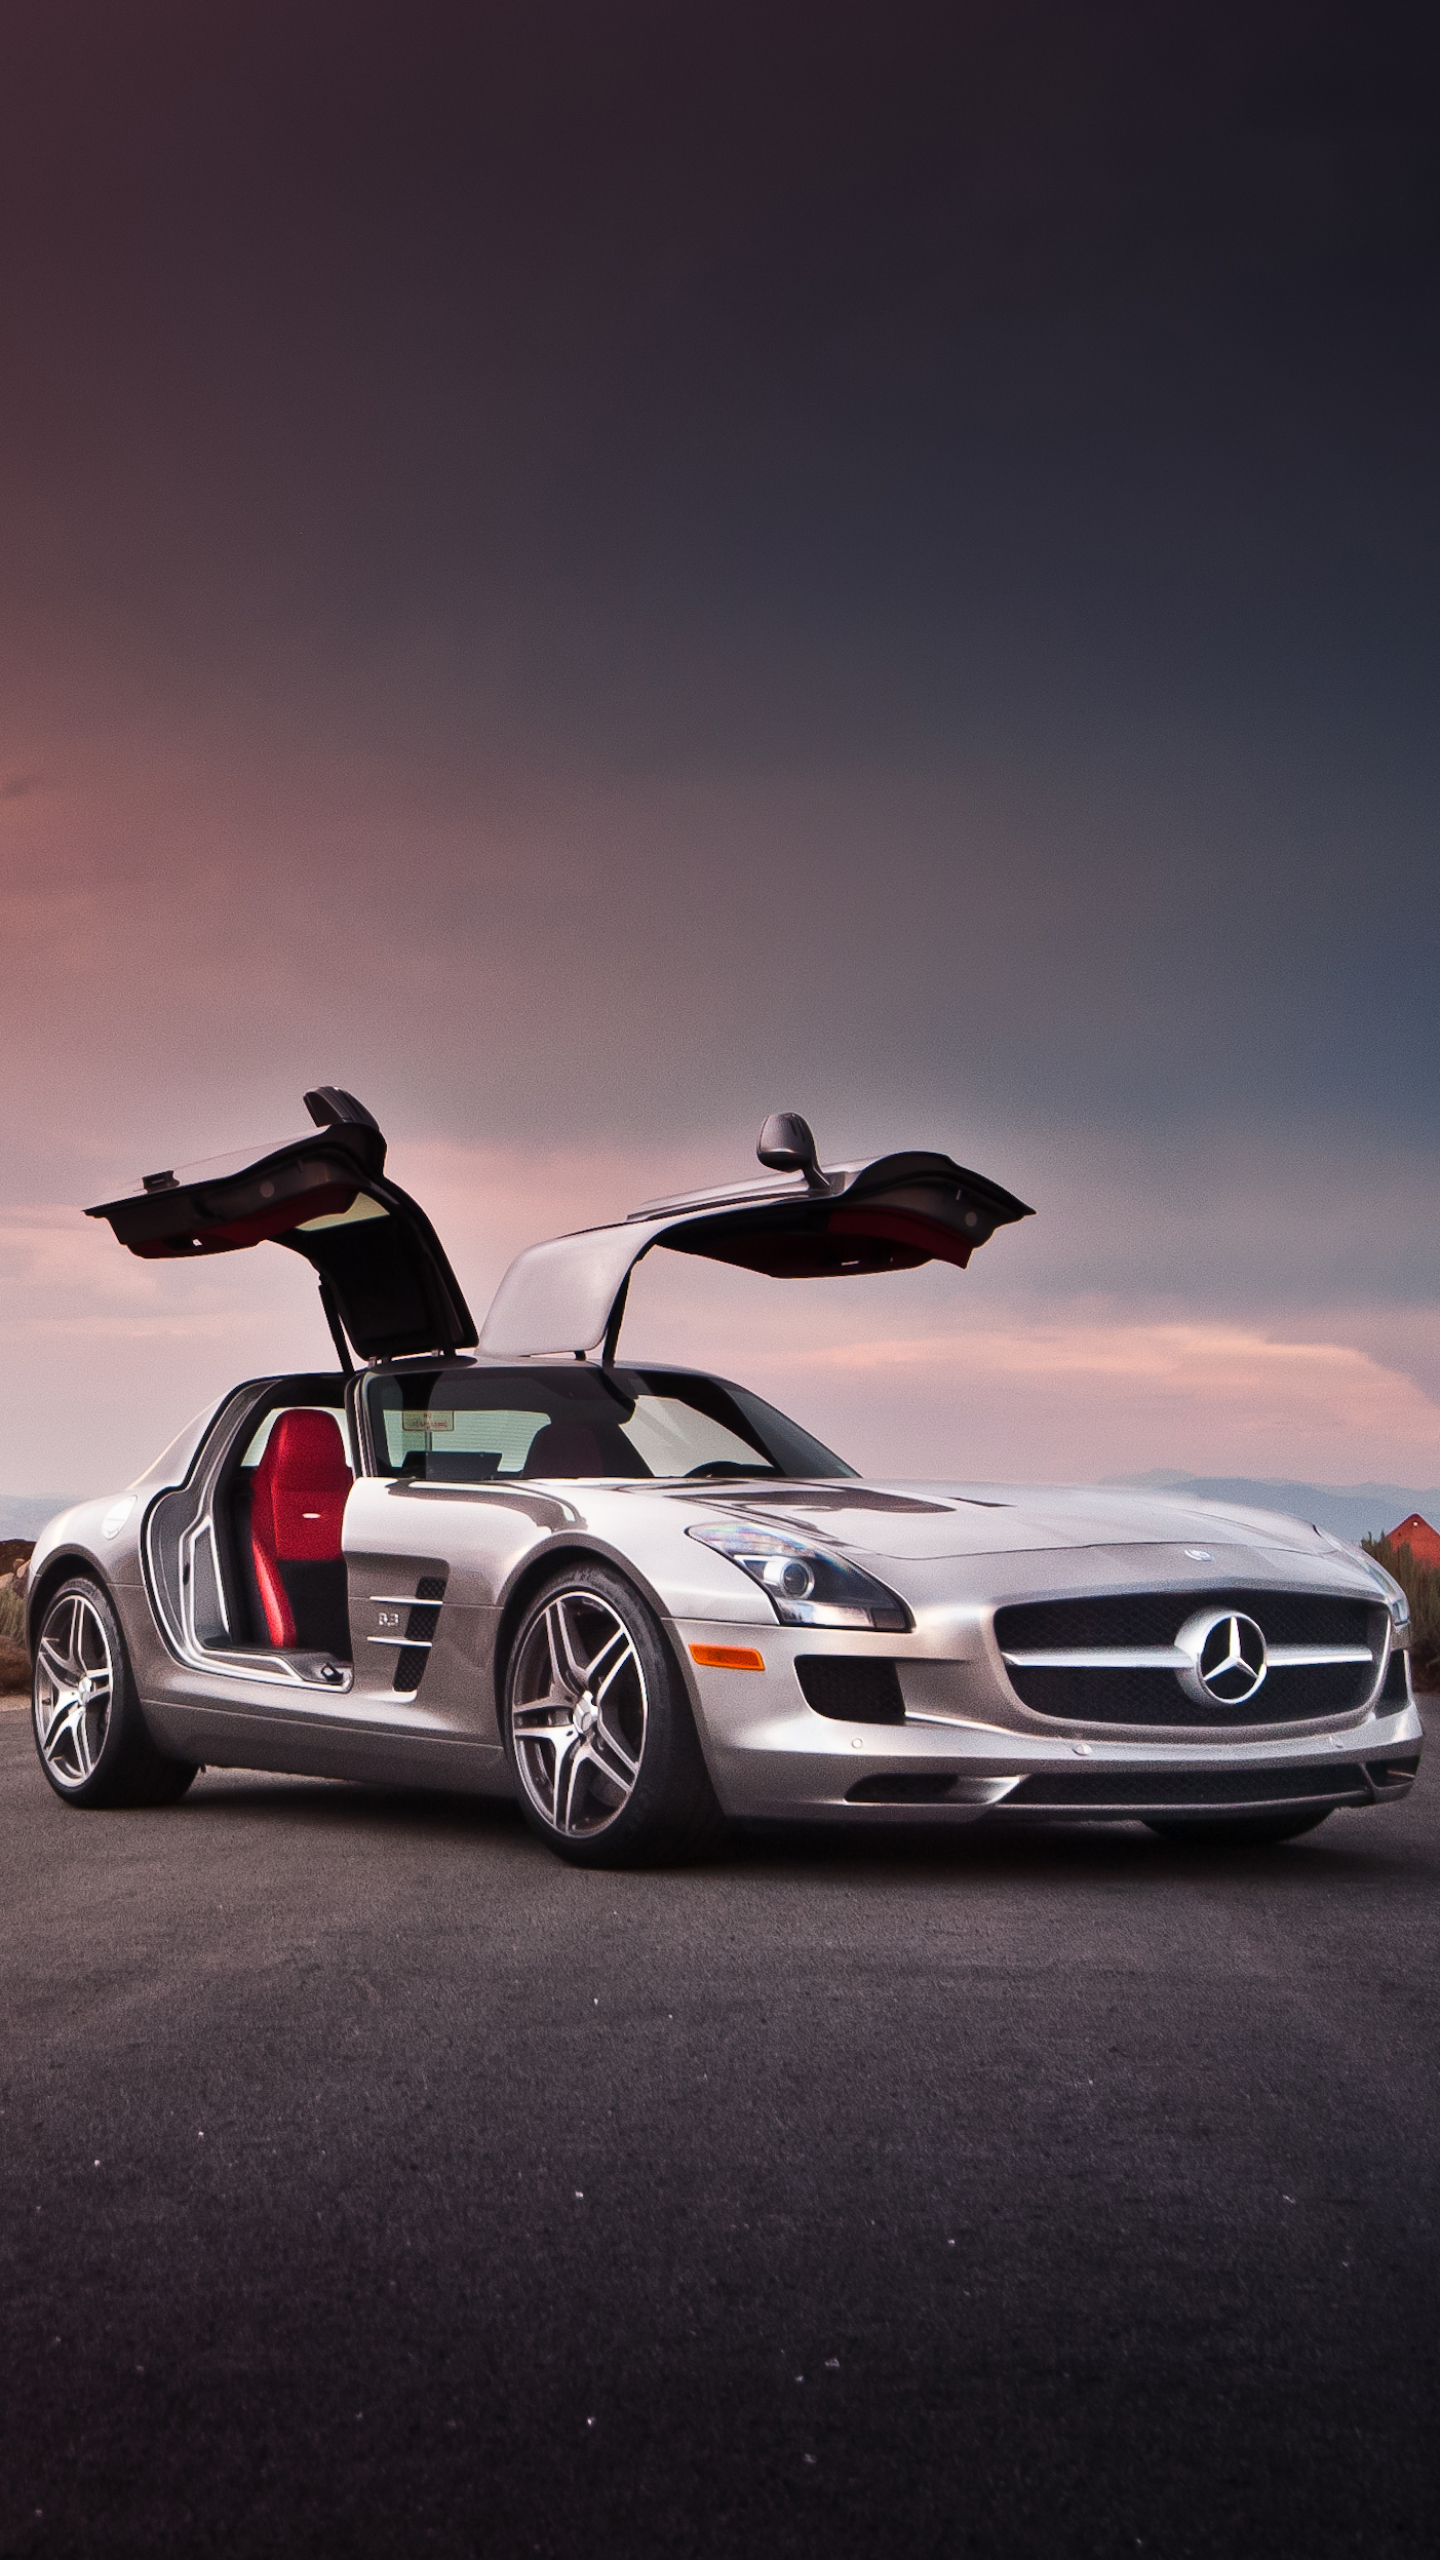 Mercedes benz sls amg iphone wallpaper matatarantula for Contact mercedes benz financial